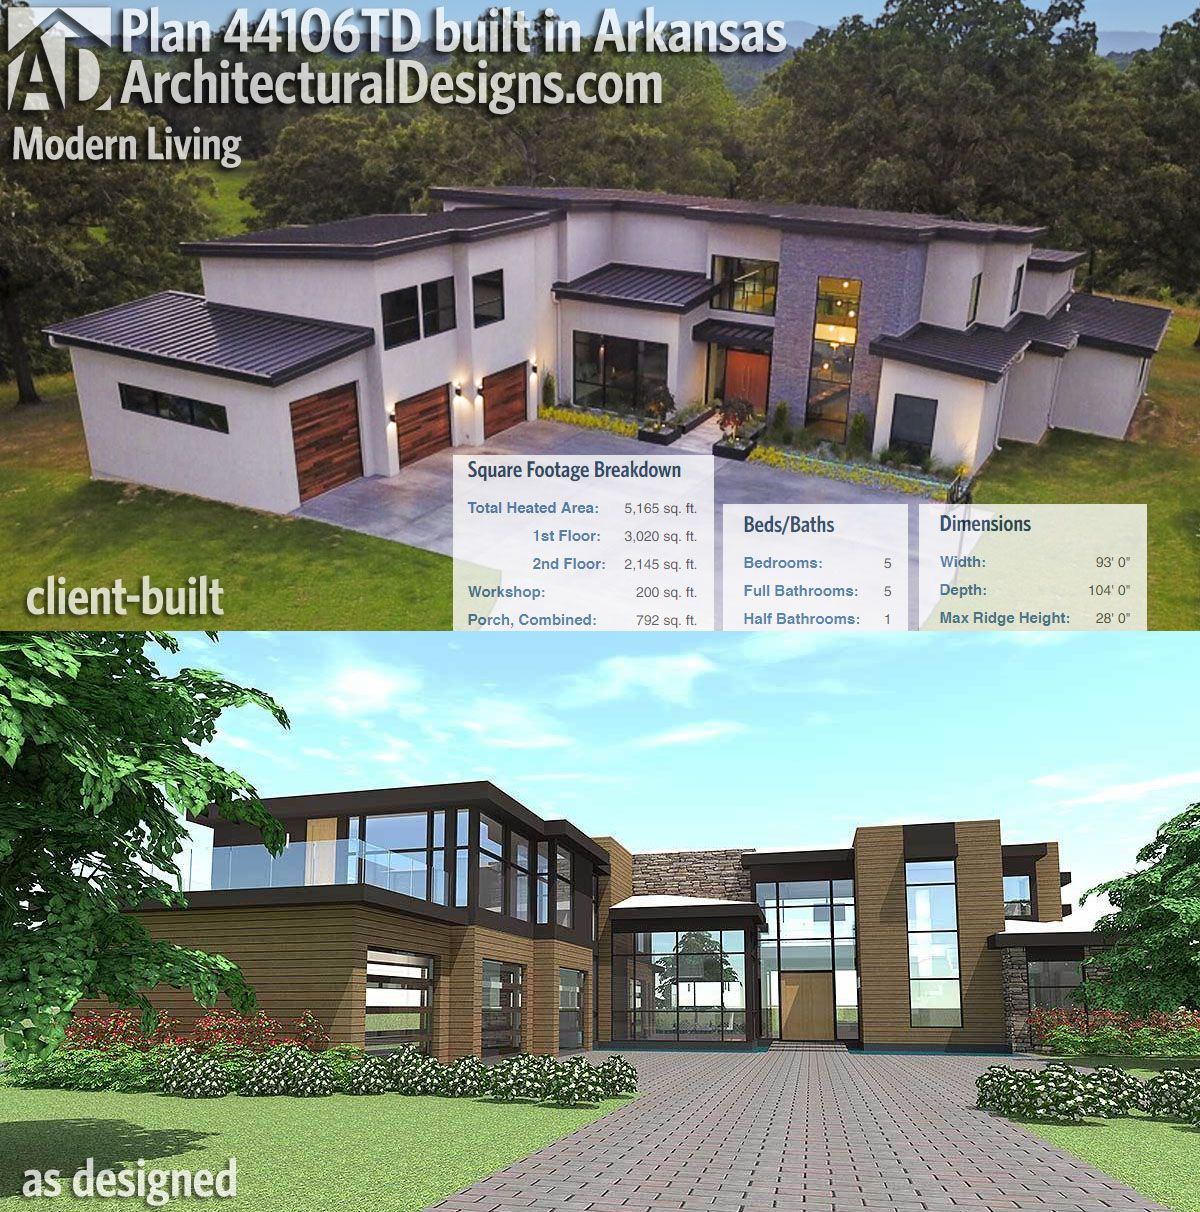 Plan 44106td modern living maisons for 5000 sq ft modern house plans